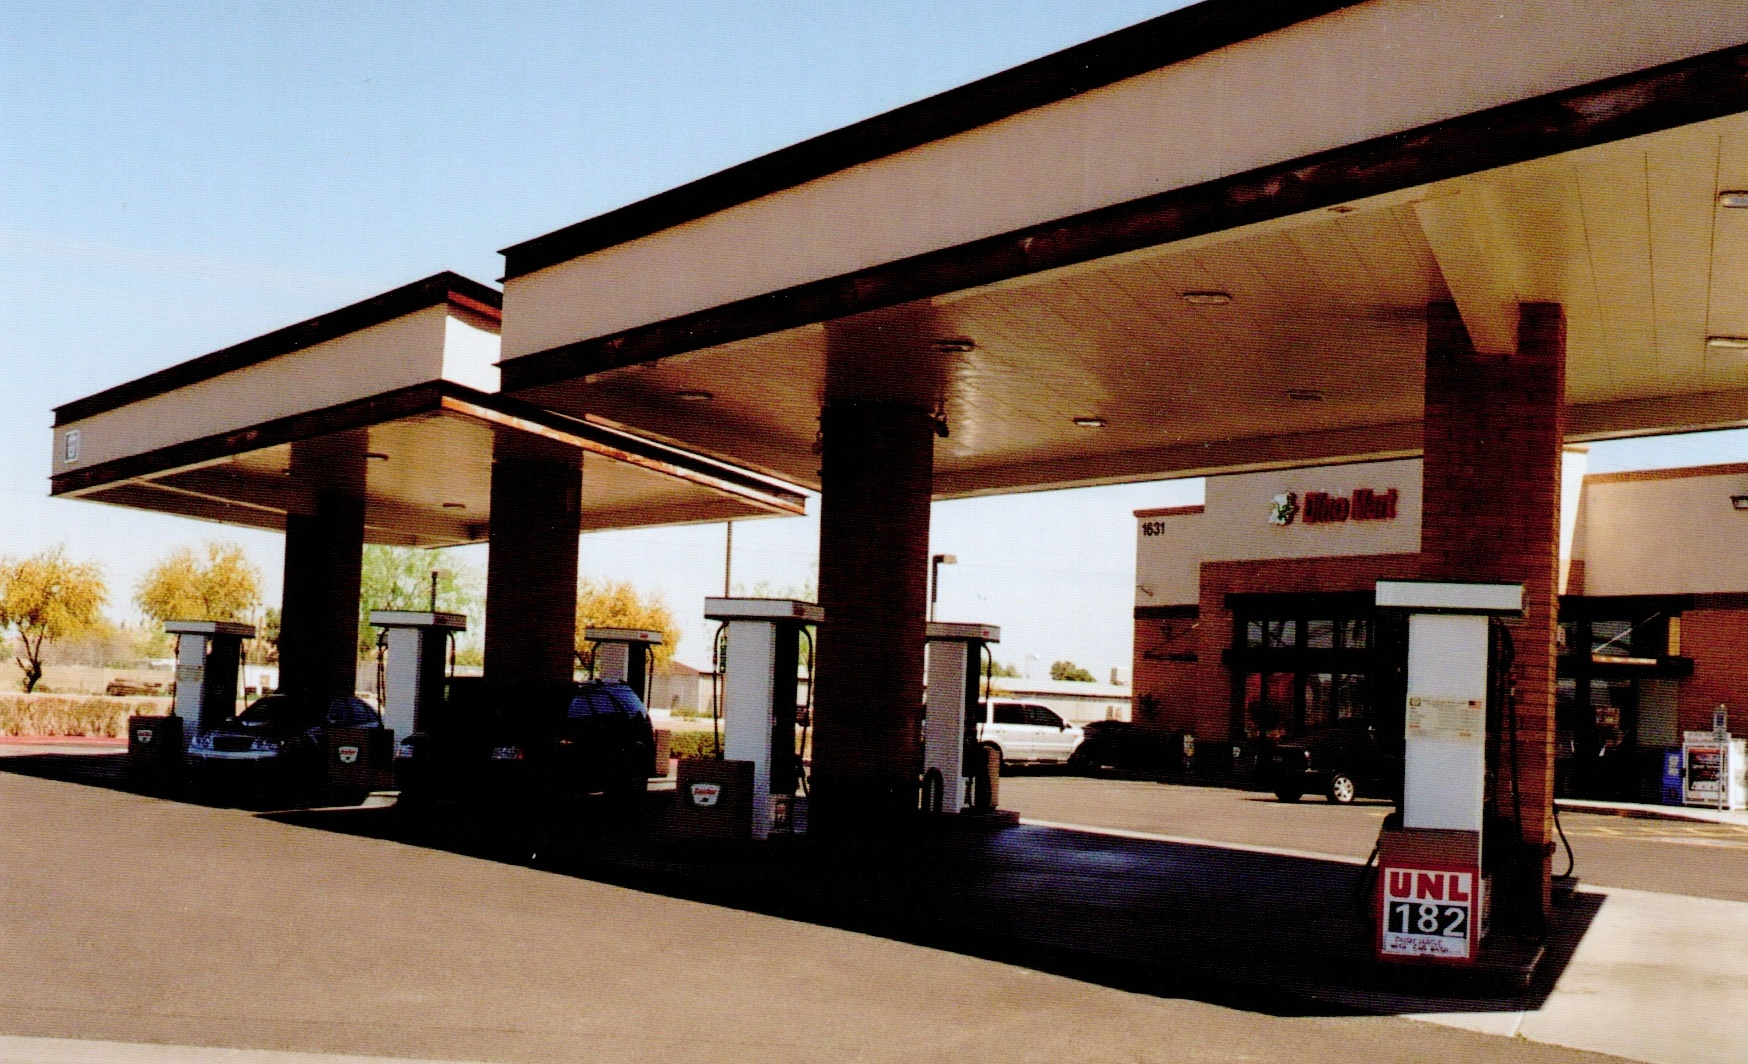 Mjg Gas Station Specialists Llc - Real Estate Listing, Real